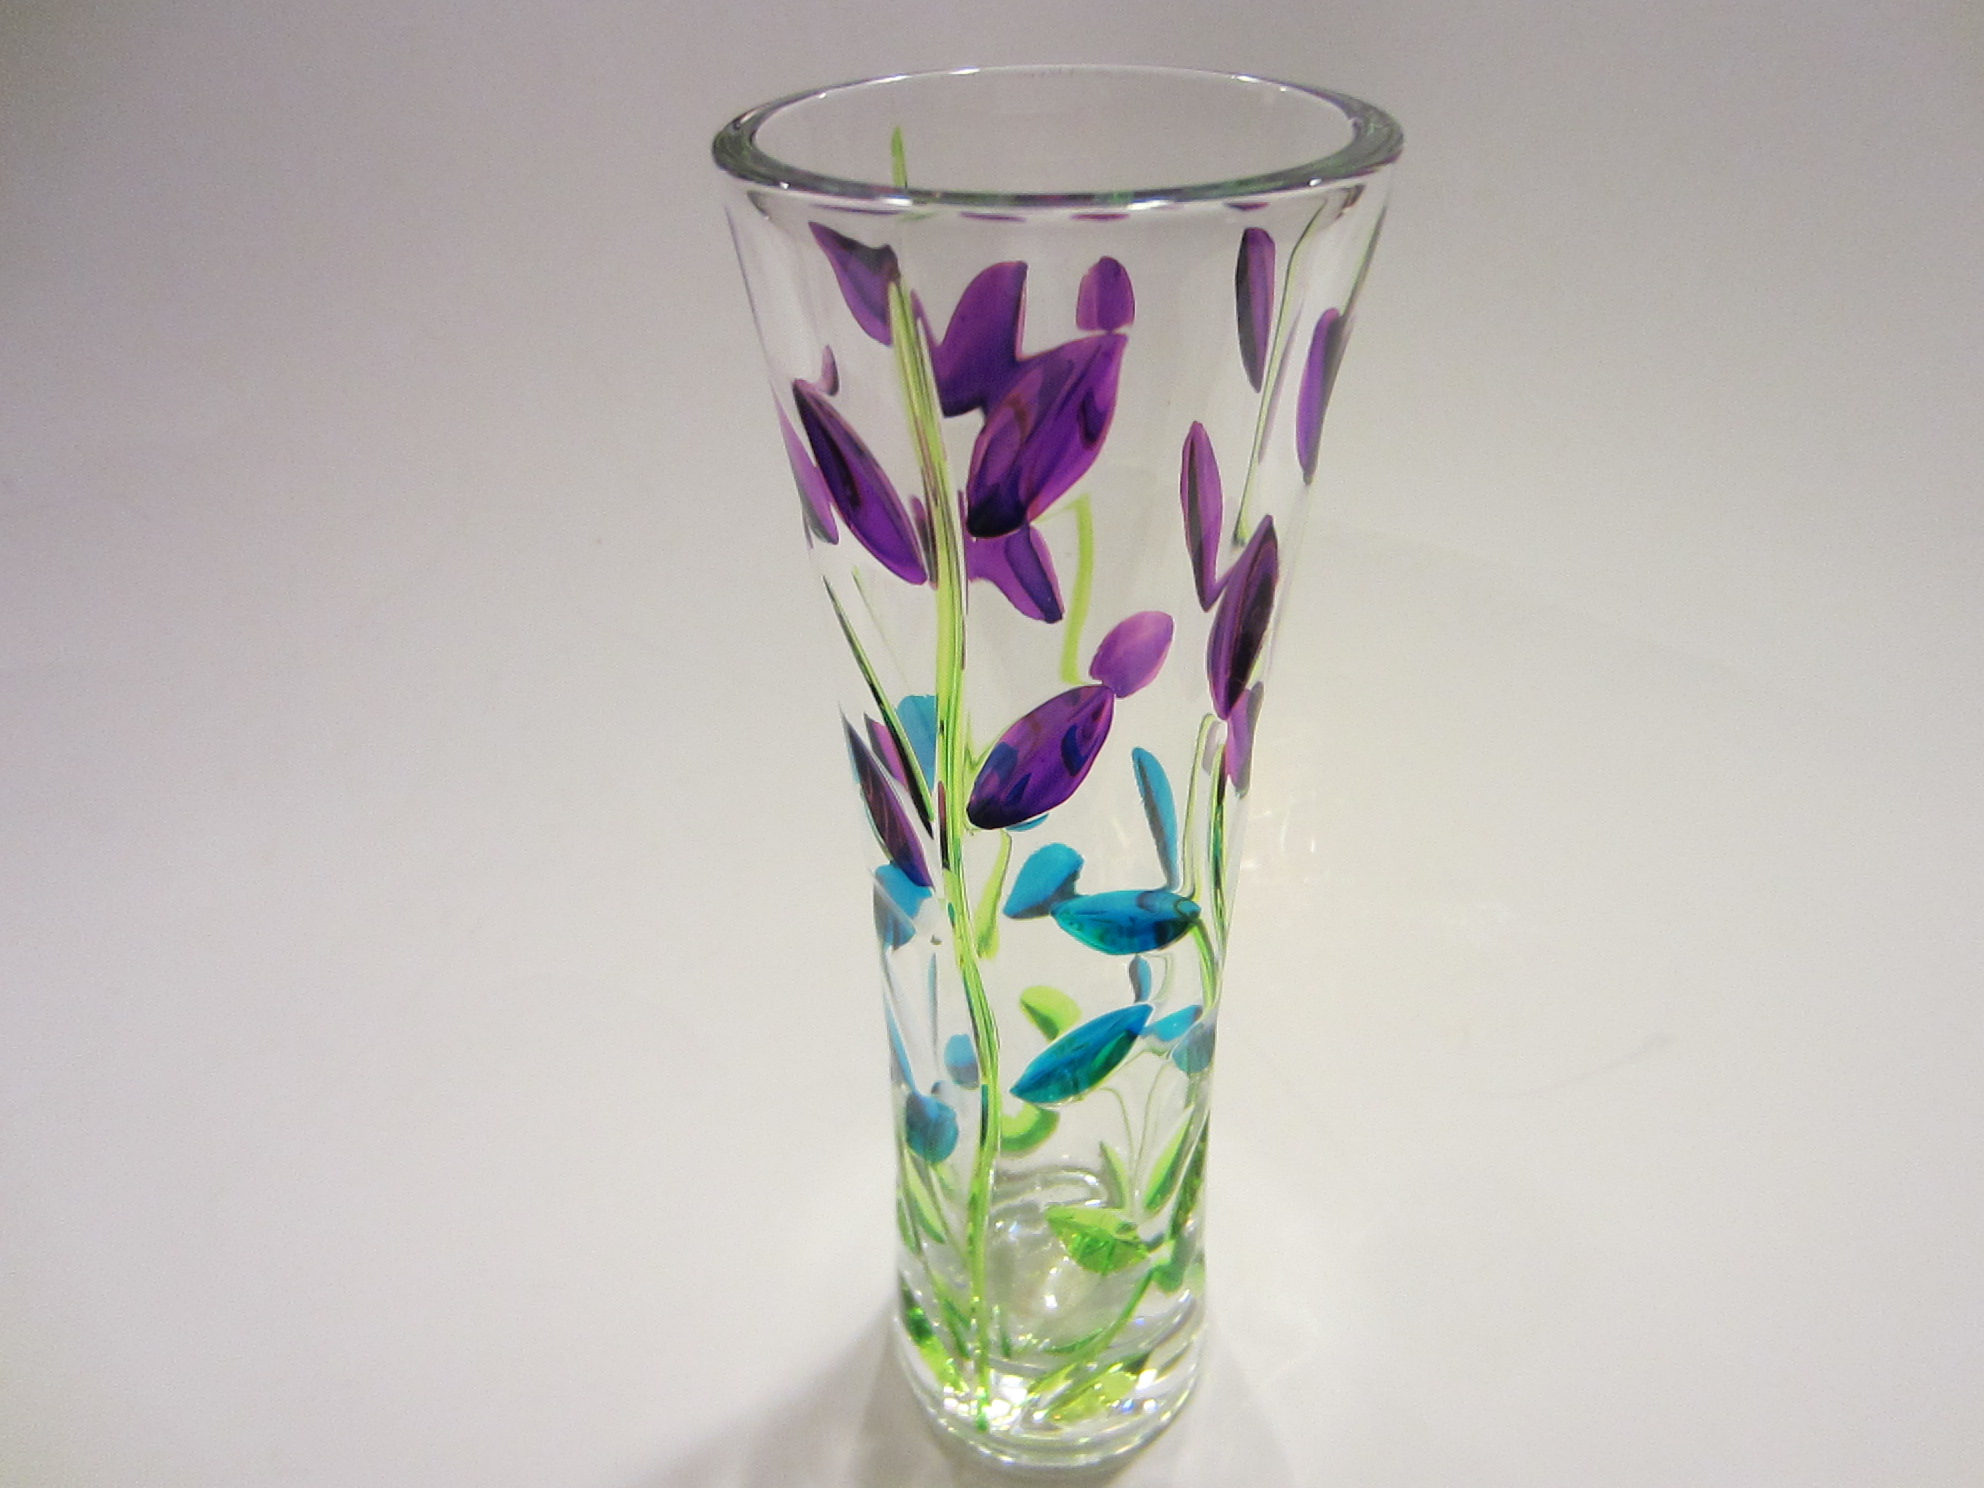 Murano Art Glass Vase With Colored Leaves For Sale